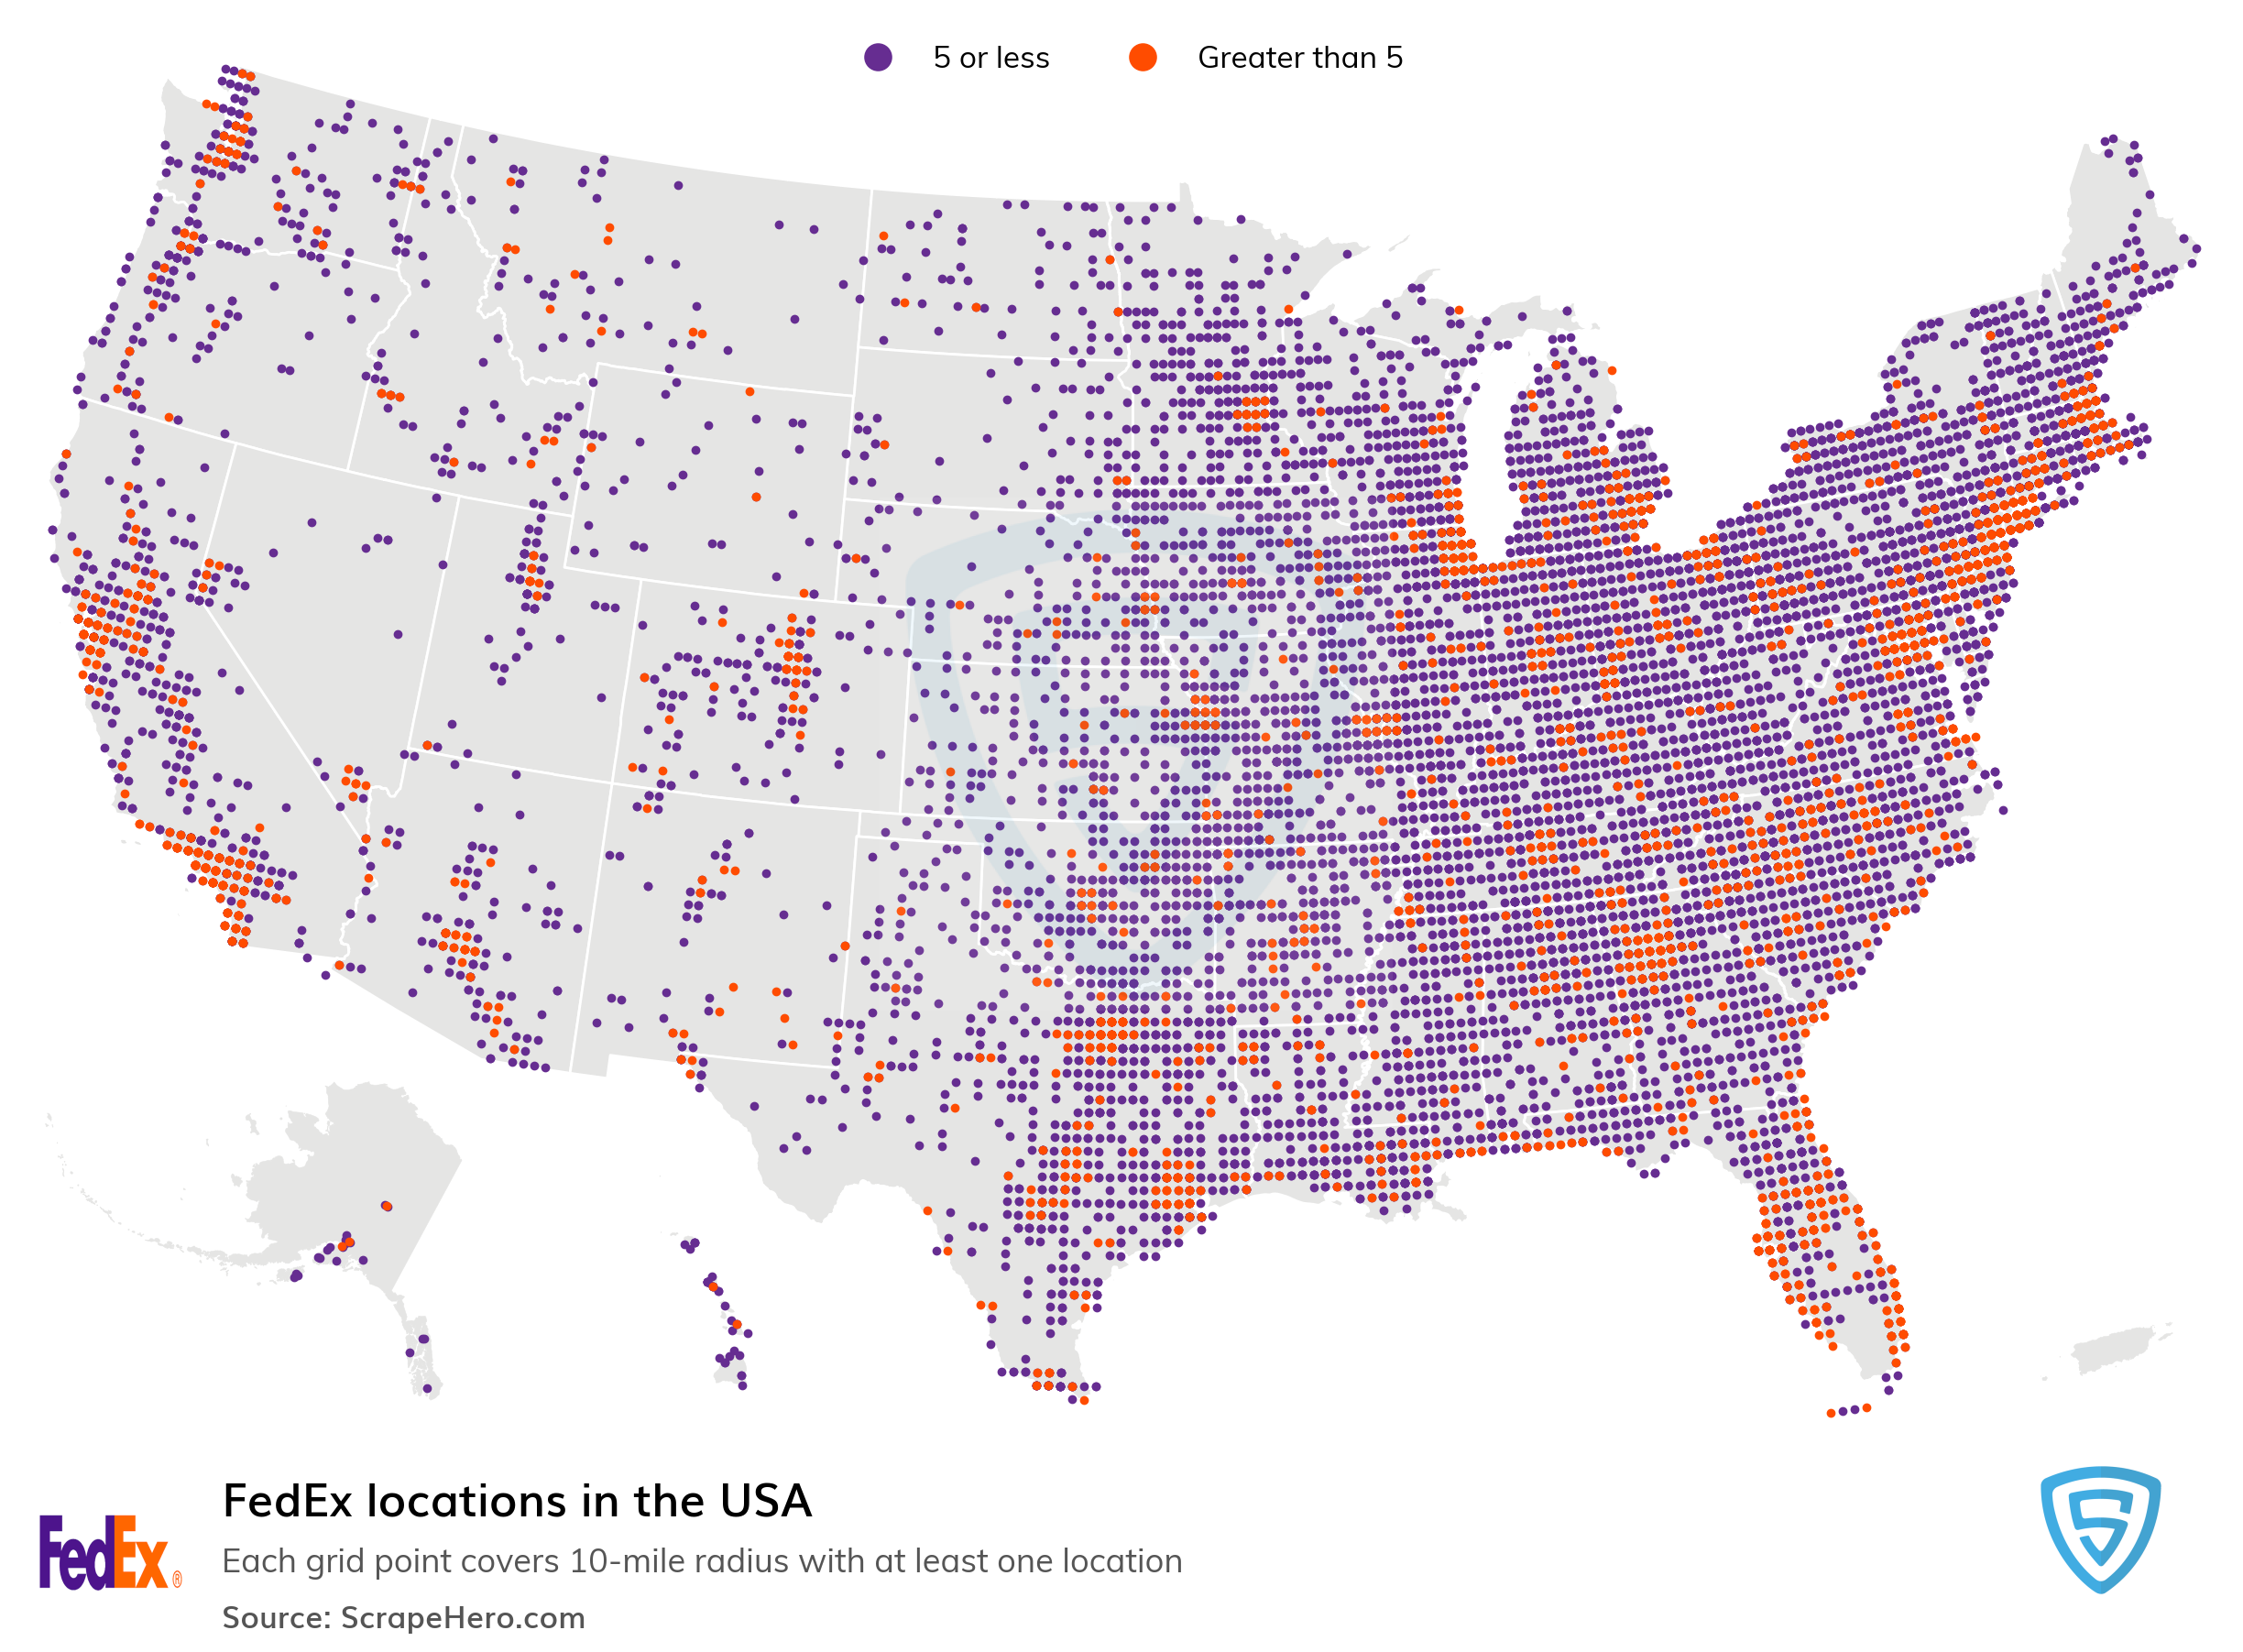 Map of FedEx locations in the United States in 2021